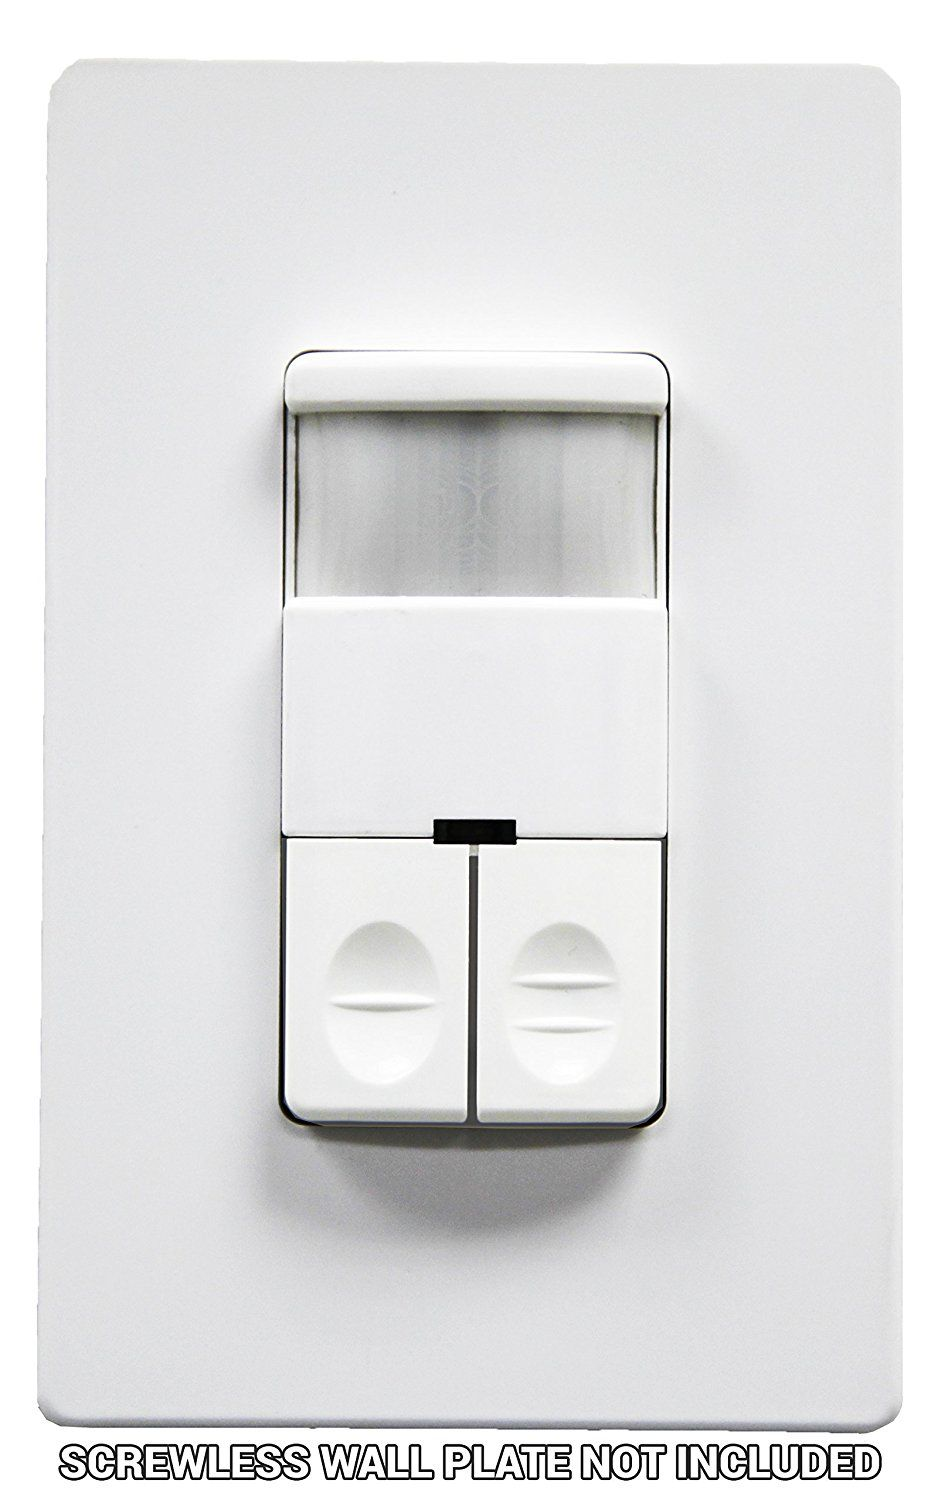 Enerlites DWOS-JD Dual Relay Occupancy Sensor Switch, Bi-Level, PIR ...